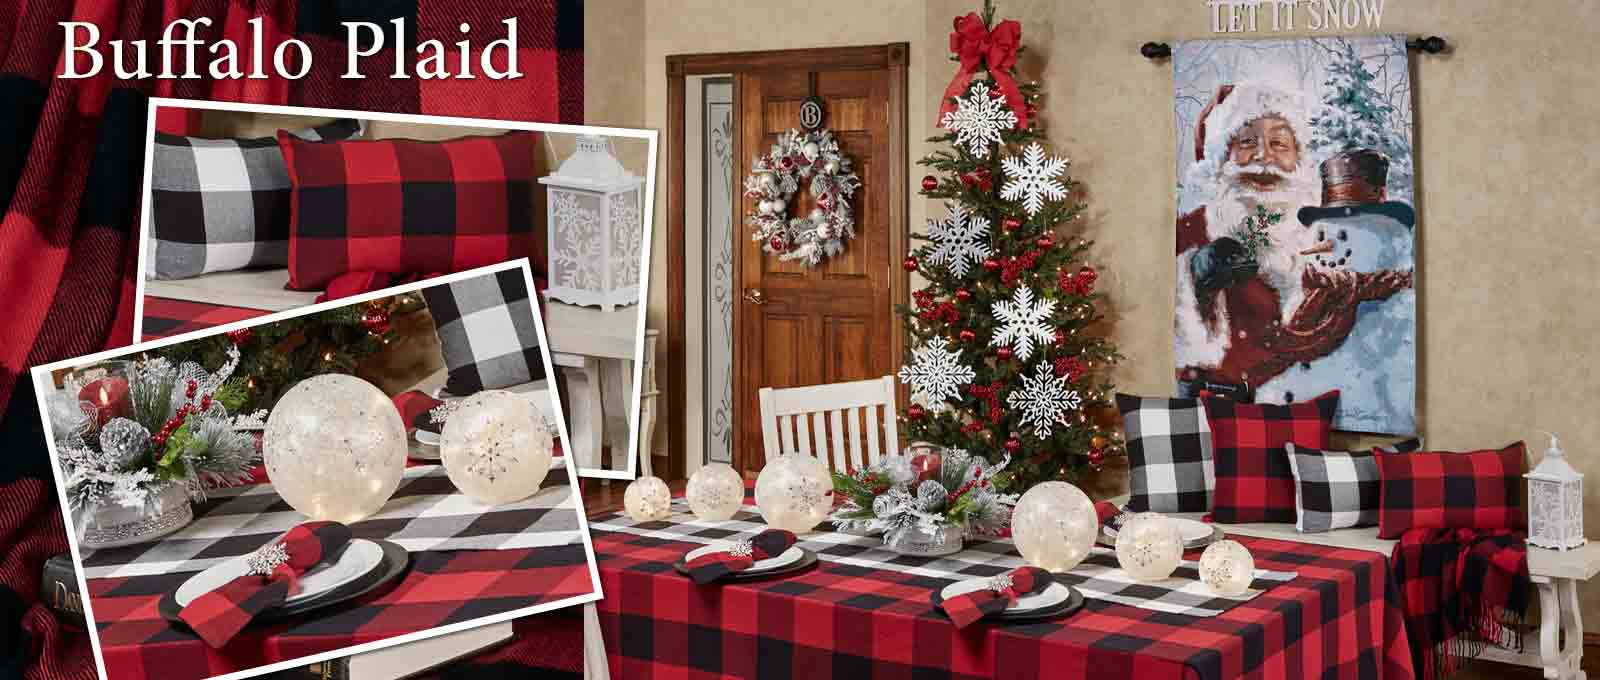 Buffalo Plaid Christmas Dining Room